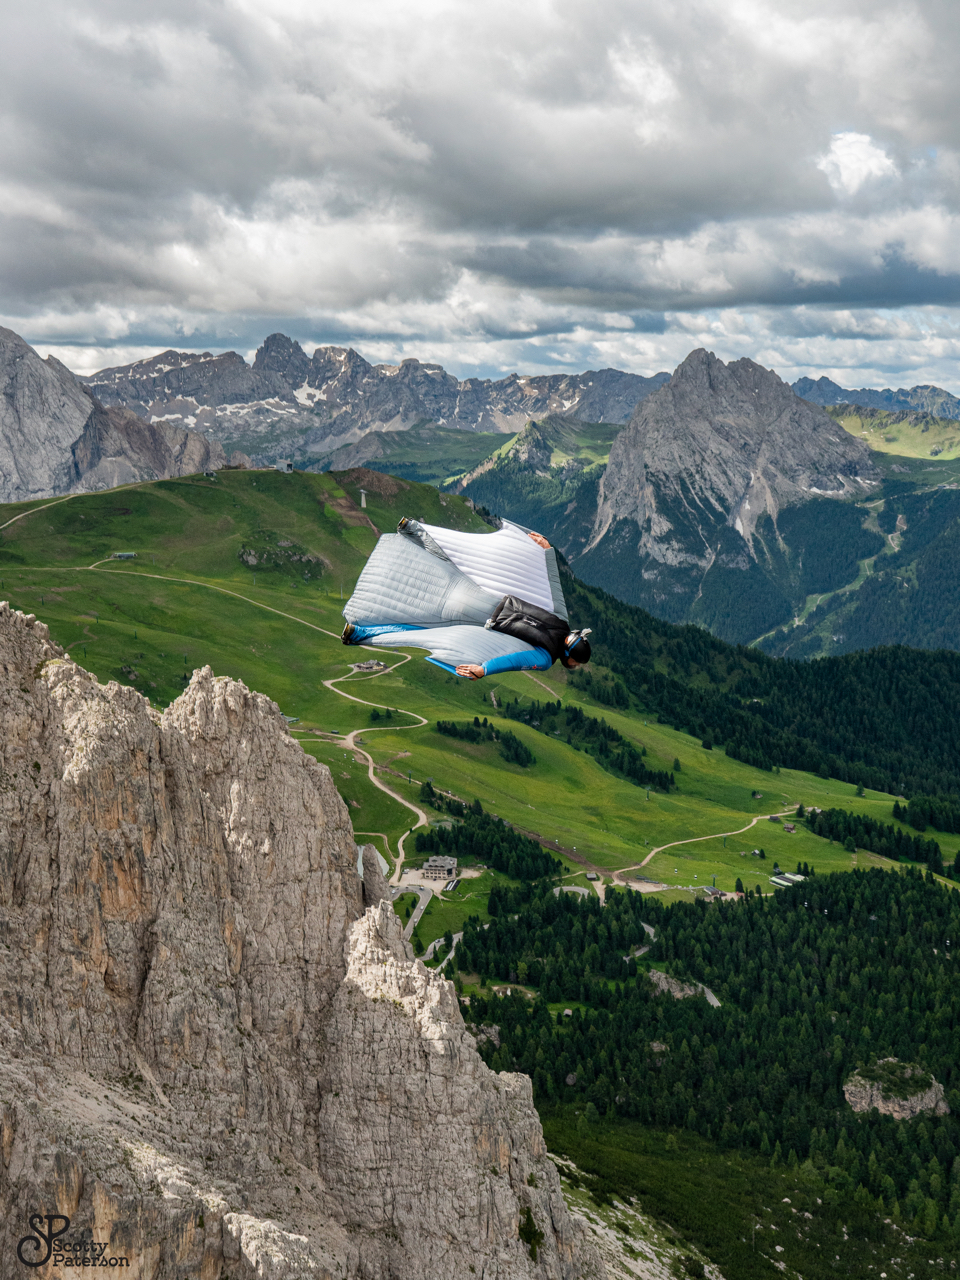 Picture by Scott Paterson, Wingsuitpilot Peter Salzmann